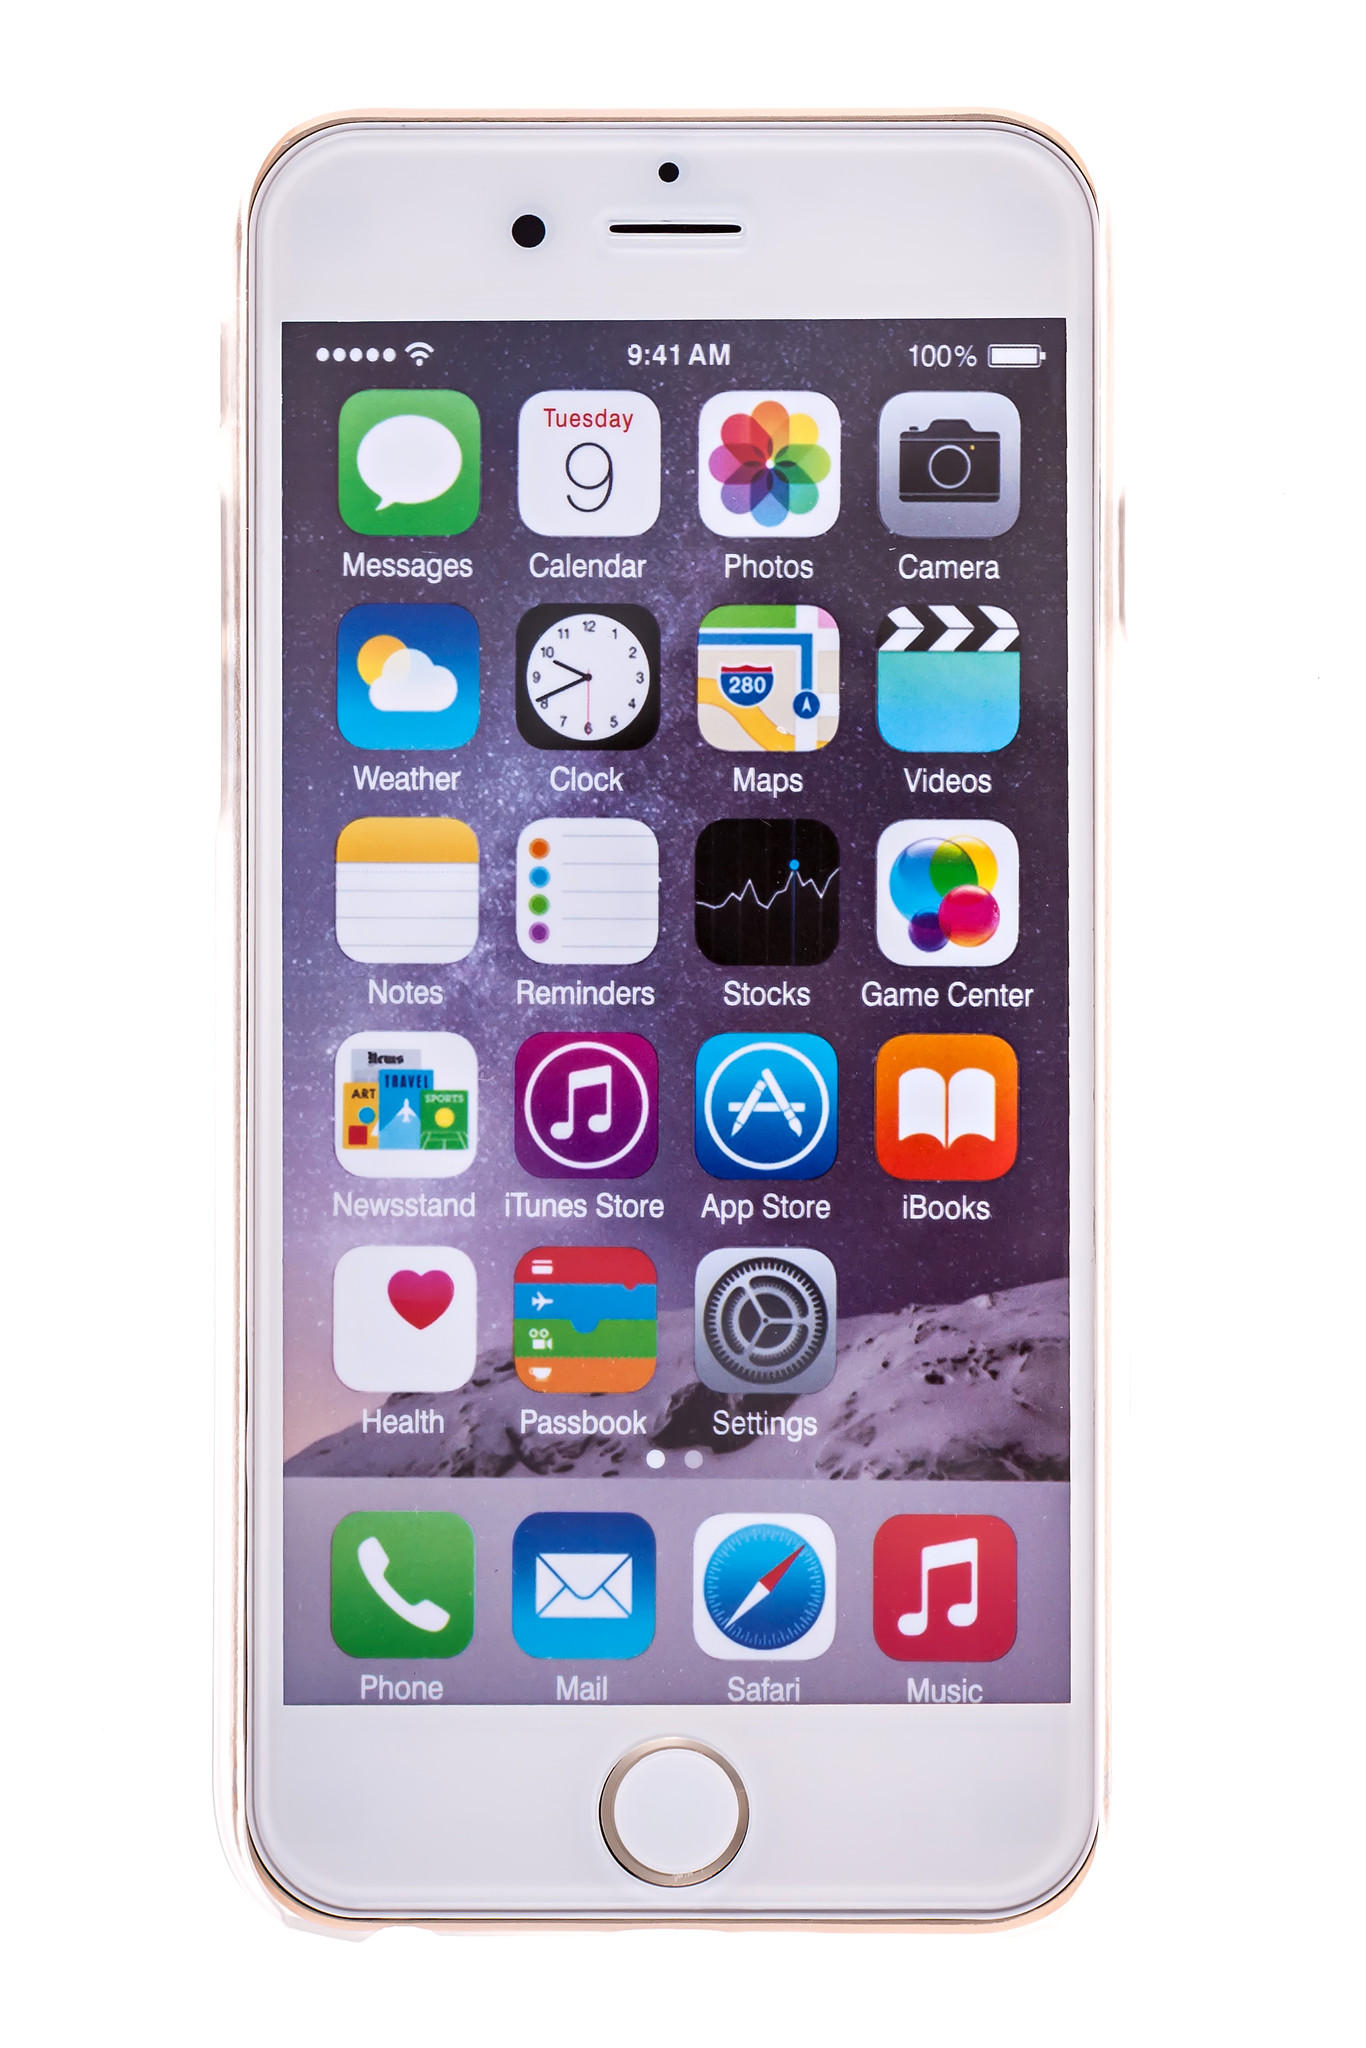 Olaf Transparent Back Cover Case For From Bestcellgear Llc Otterbox Defender Series Iphone 6 Plus Neon Rose